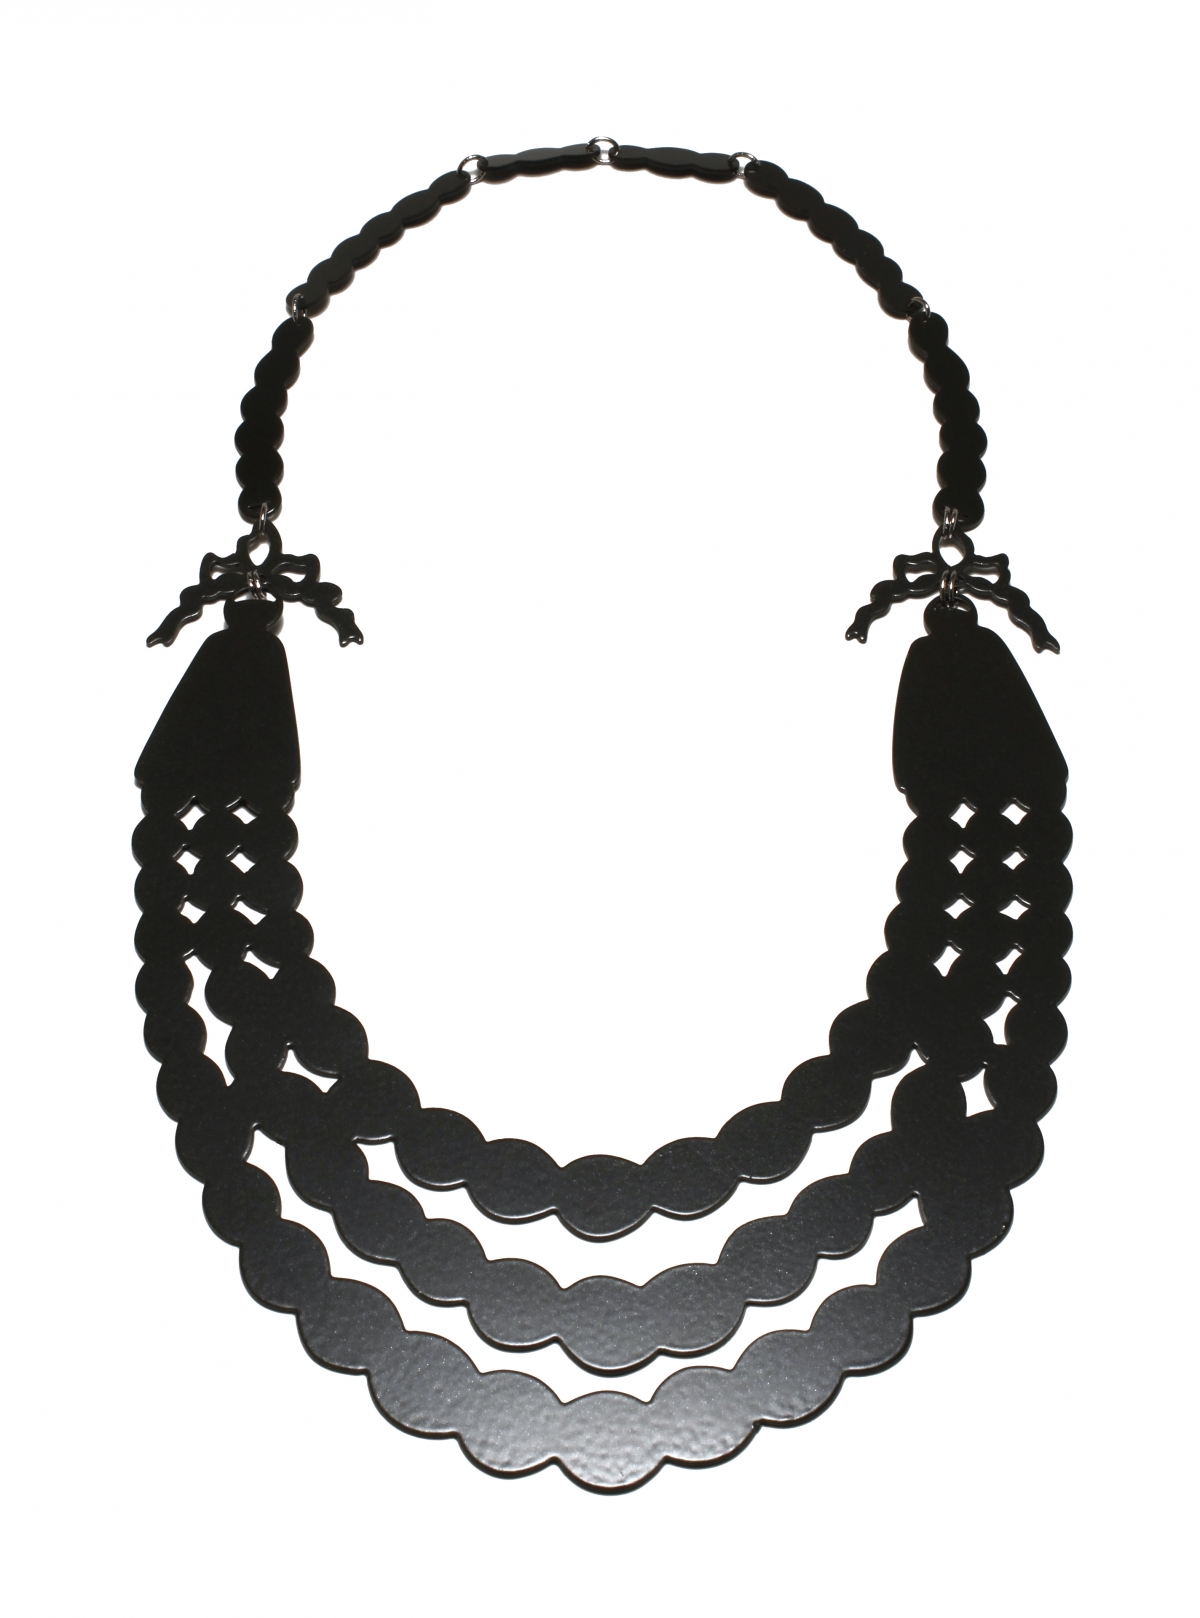 Pearl Necklace Silhouette